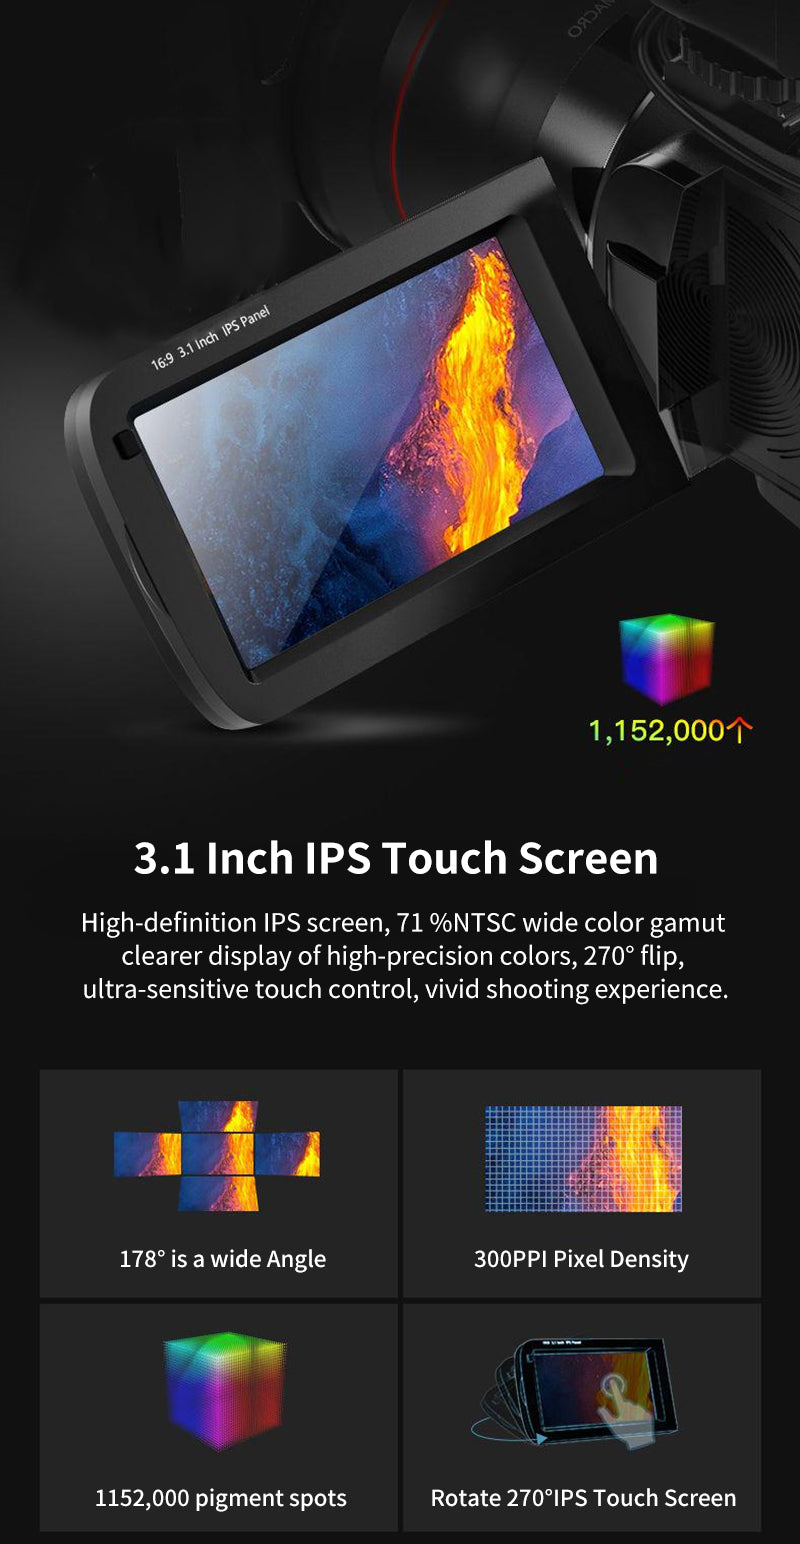 AC7 4K Camcorder is equipped with a 3.1-inch HD touch screen, which allows you to switch the touch screen at any time when operating functions. The screen is large and clear, the screen operation is more convenient than the button operation.